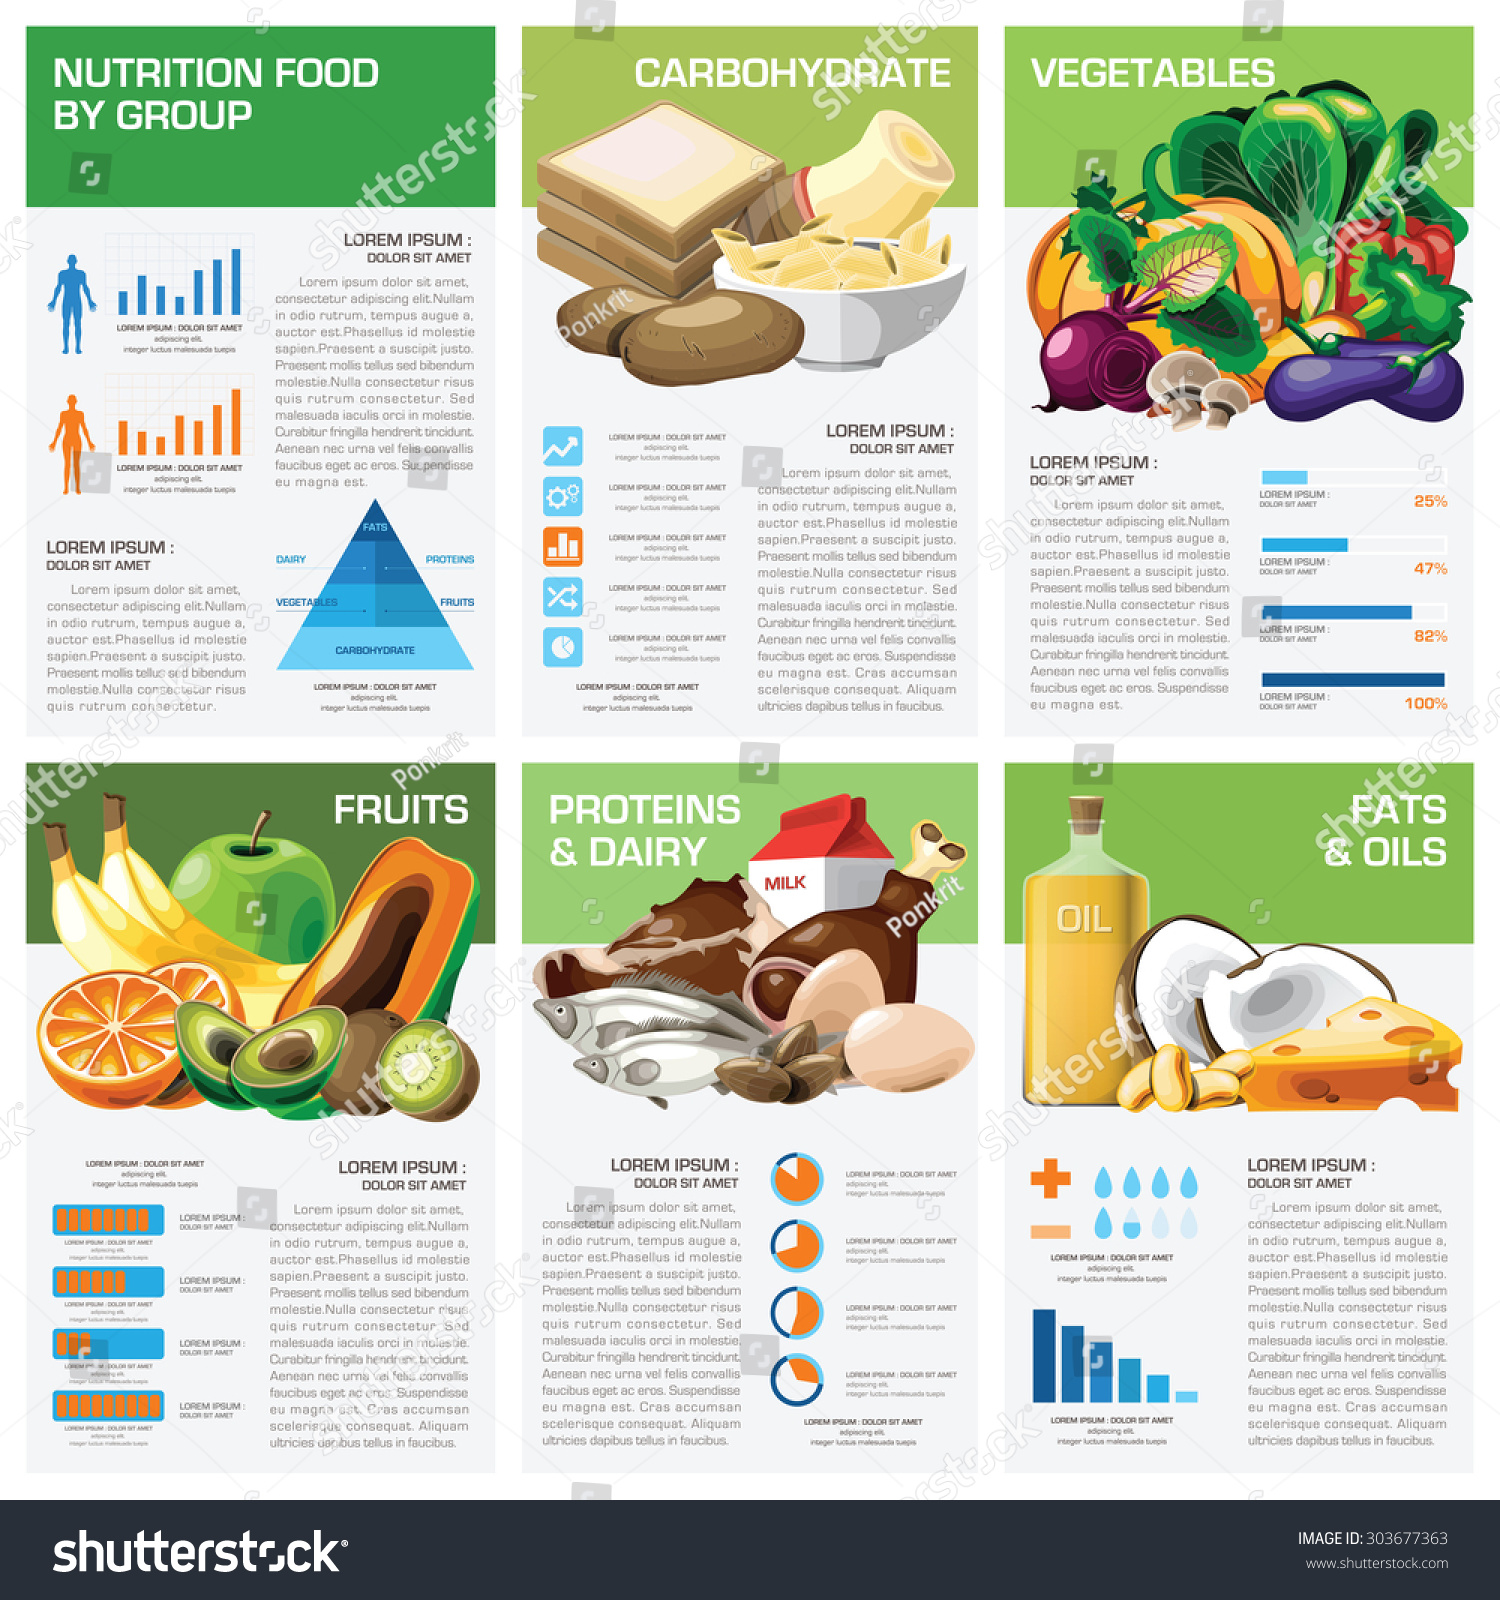 health nutrition food by group infographic stock vector 303677363 shutterstock. Black Bedroom Furniture Sets. Home Design Ideas